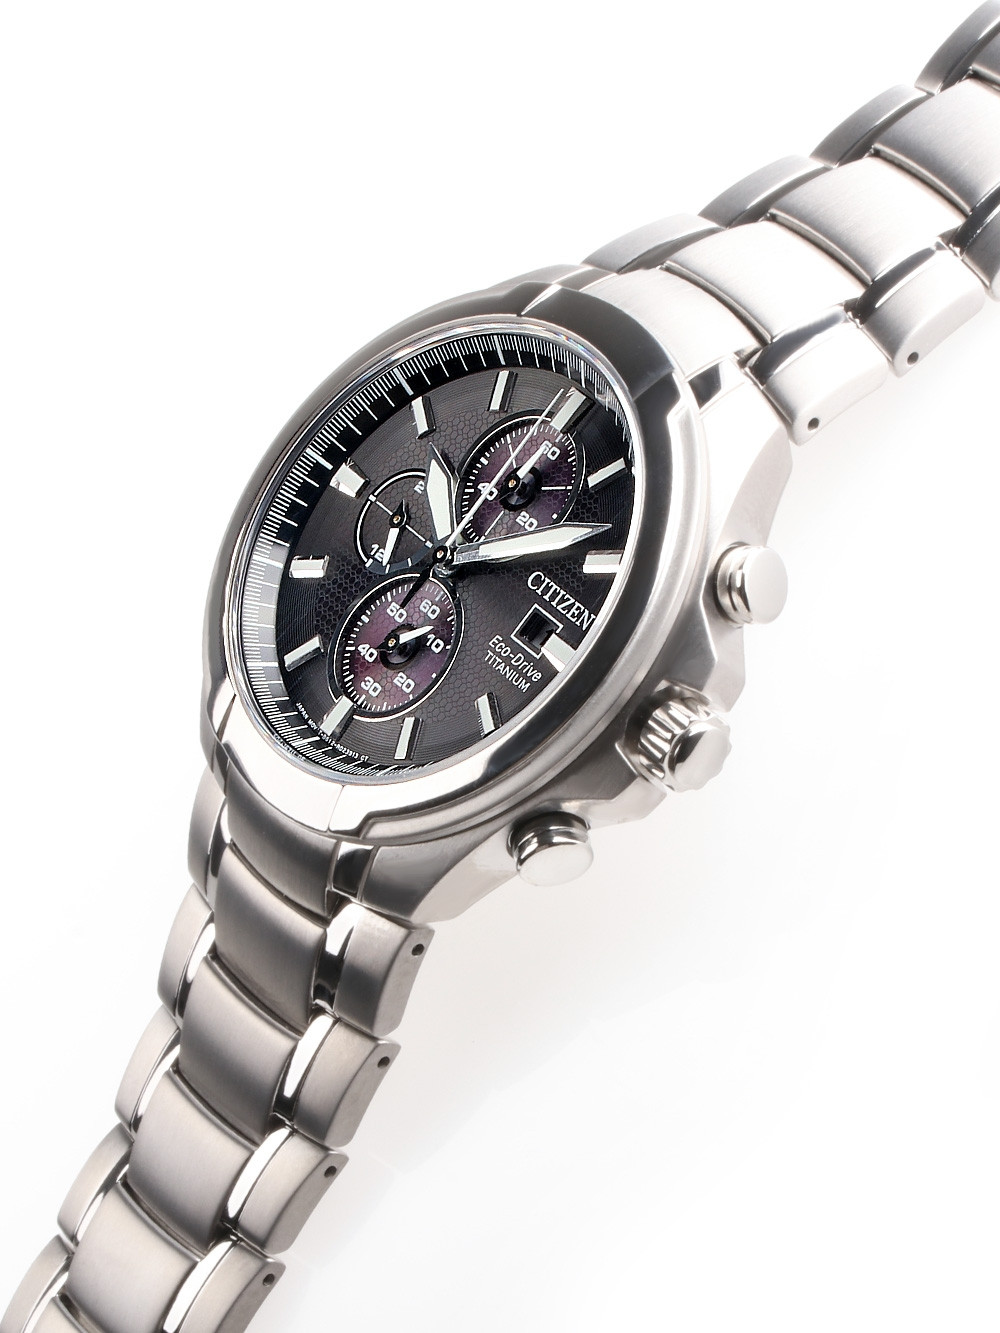 Citizen CA0700-86E Eco-Drive Super-Titanium Chronograph 42mm 10 ATM